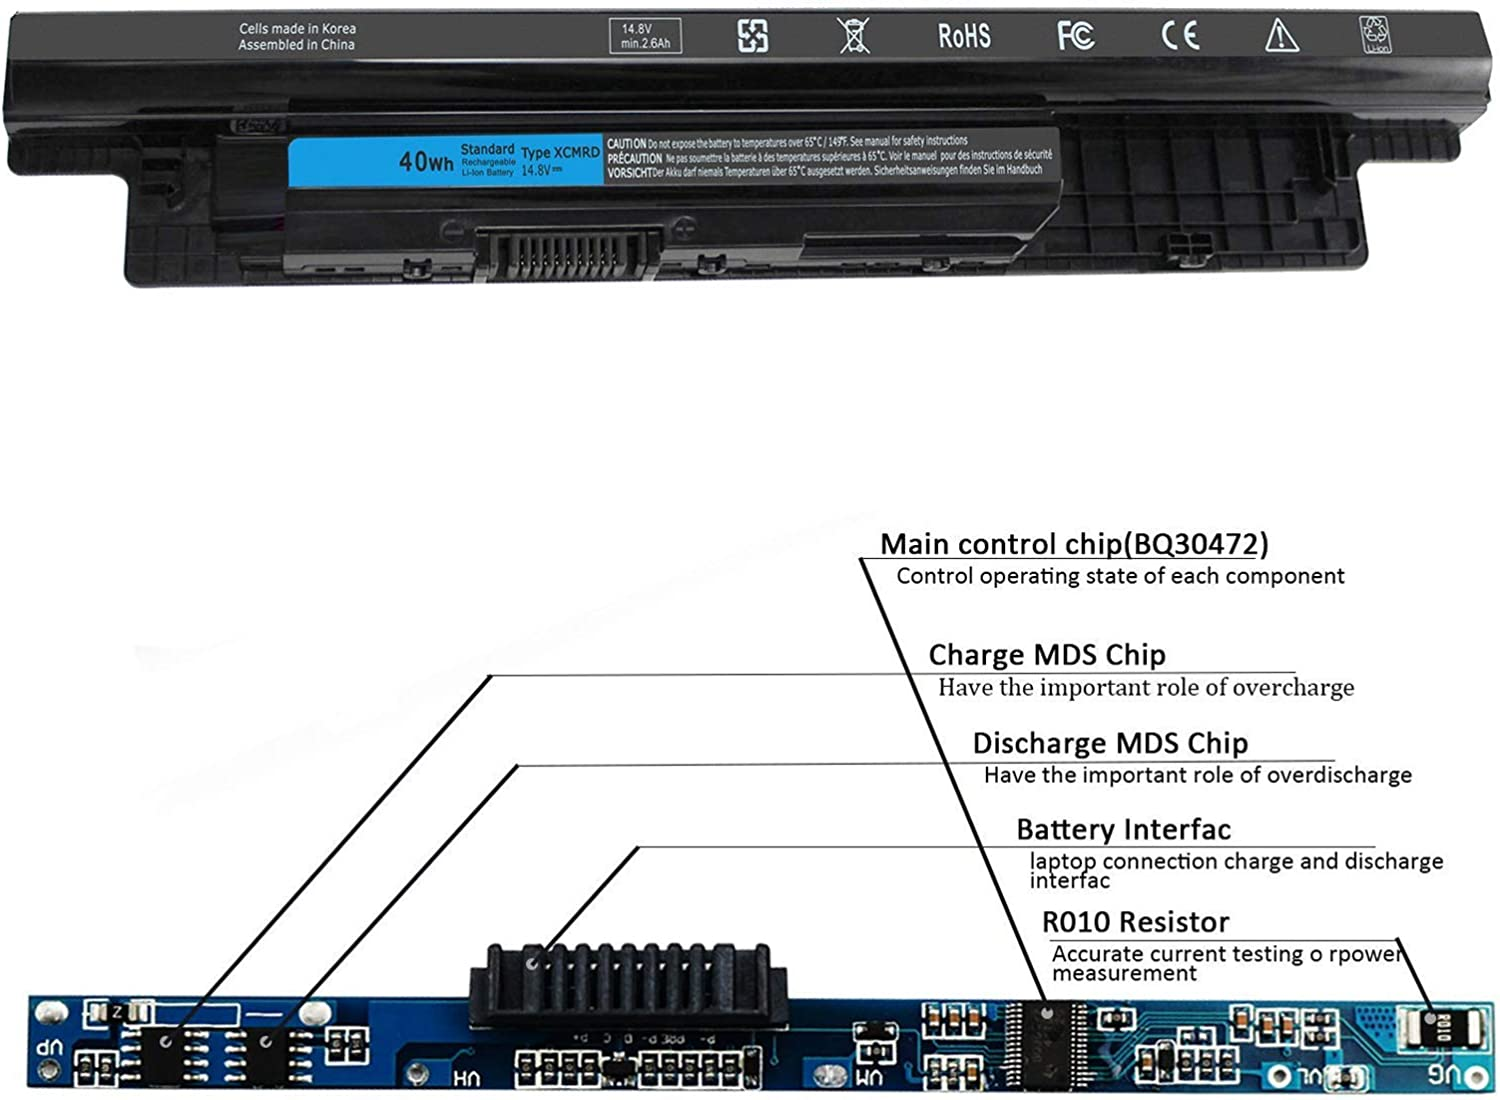 Latitude 3540 New XCMRD 14.8V 40Wh Laptop Battery Compatible with ...